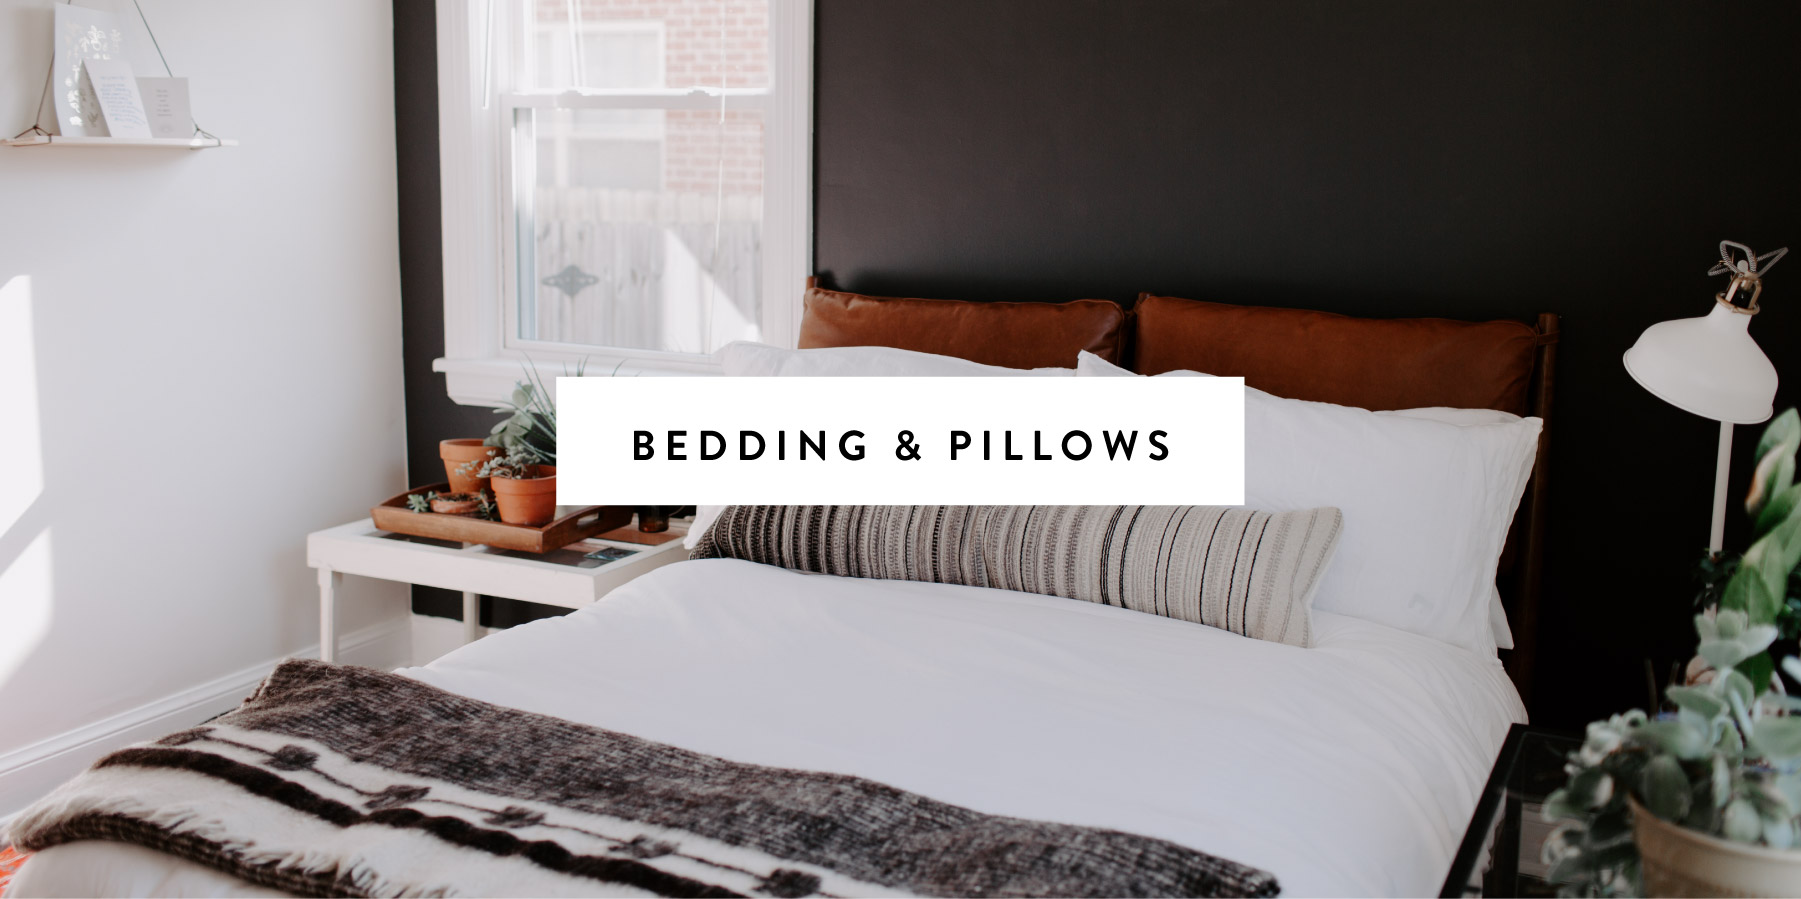 Bedding & Pillows-01.jpg